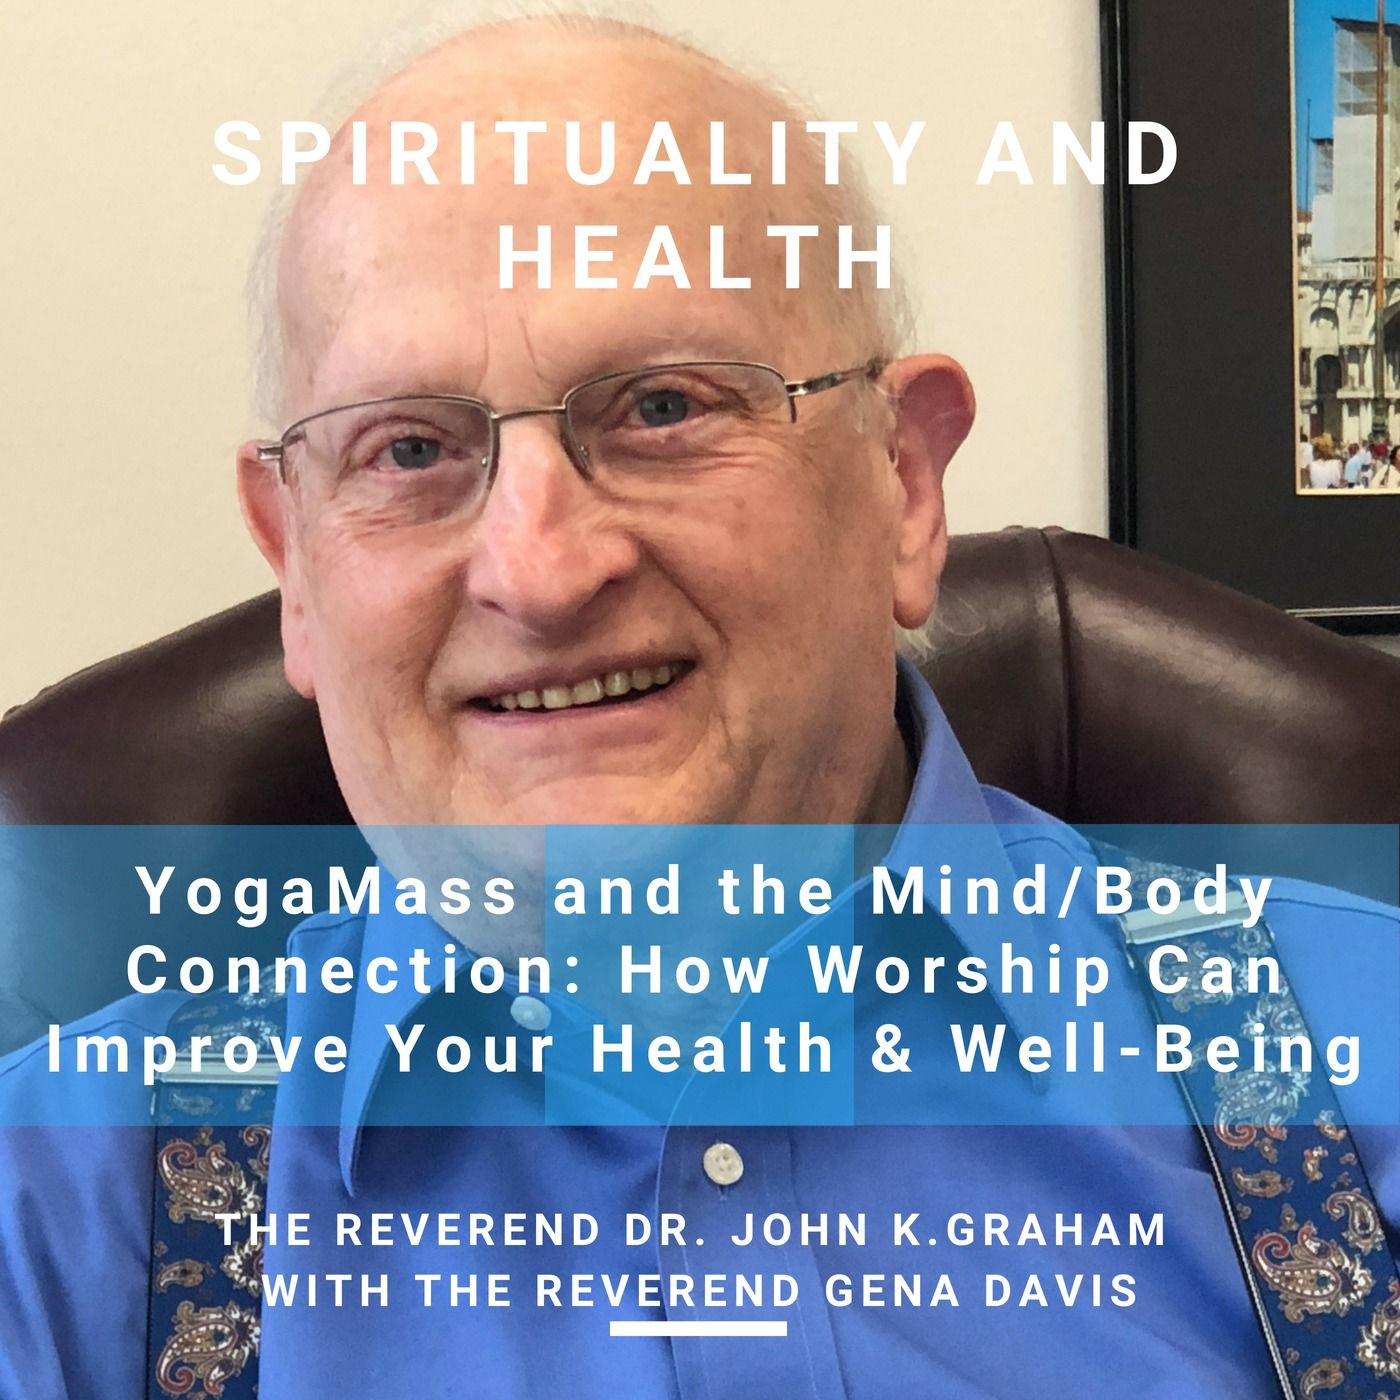 YogaMass and the Mind/Body Connection: How Worship Can Improve Your Health & Well-Being